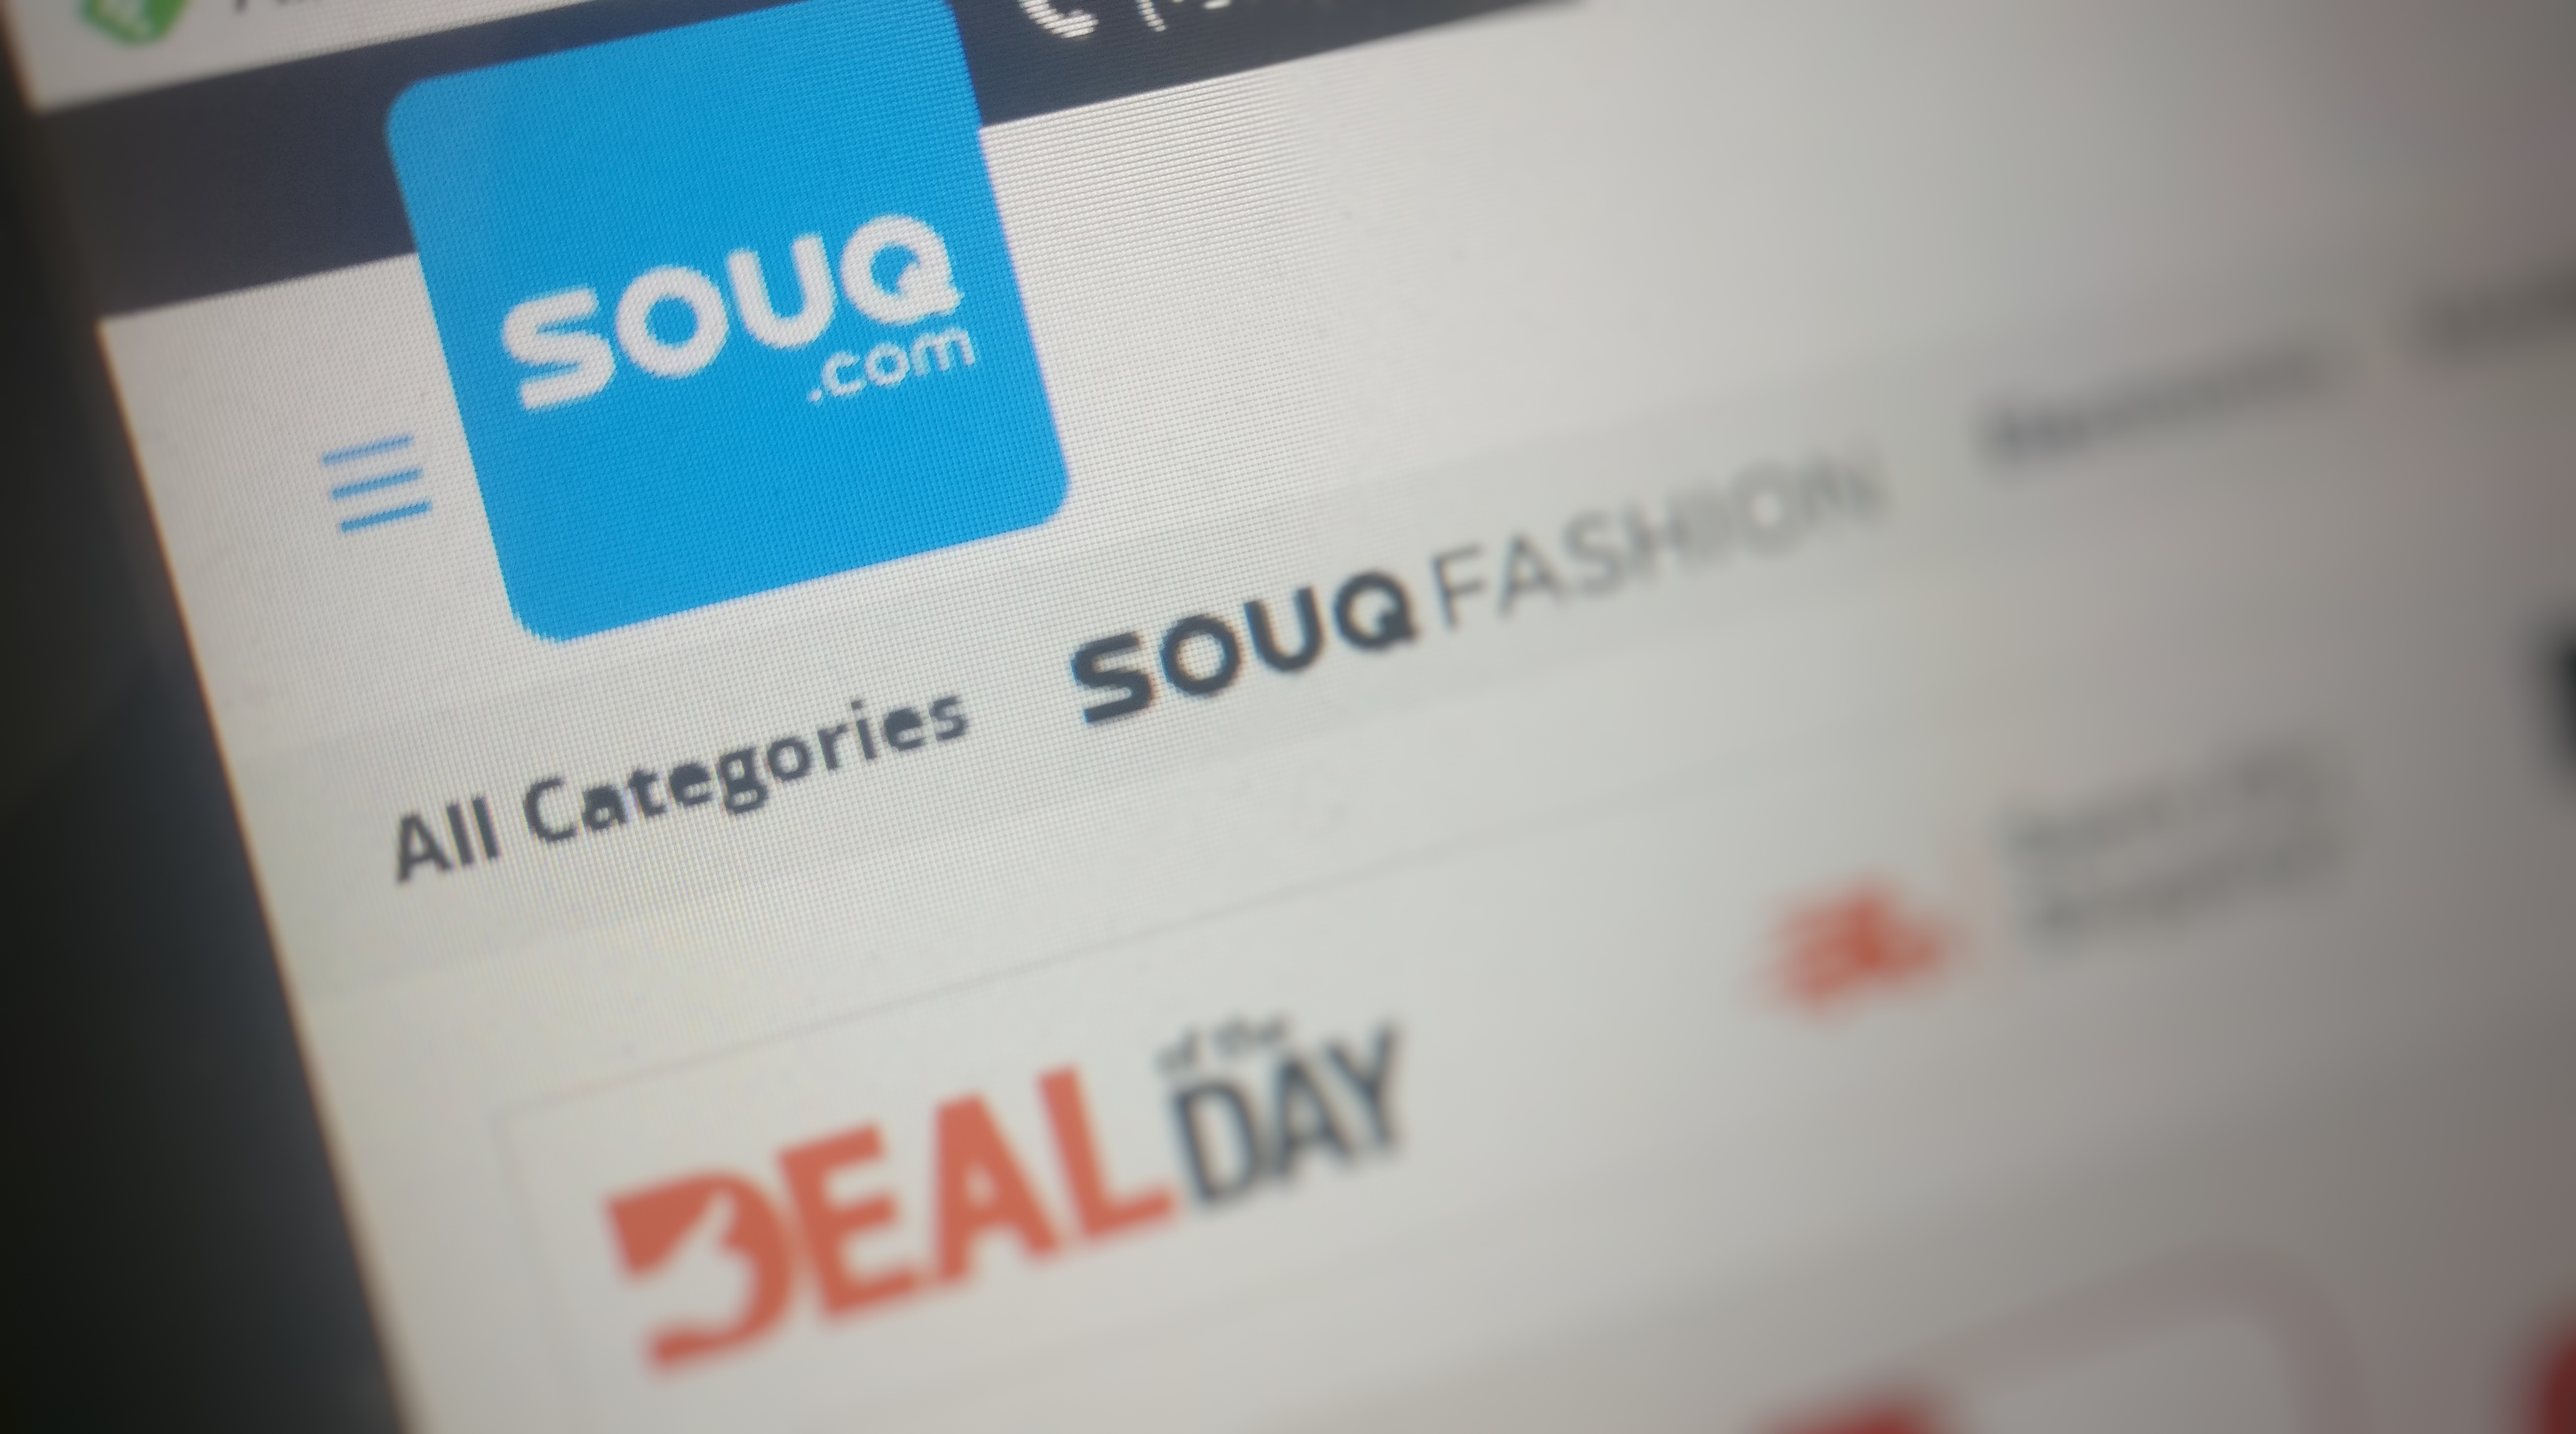 As Amazon prepares to buy Middle East rival Souq com, Emaar Malls